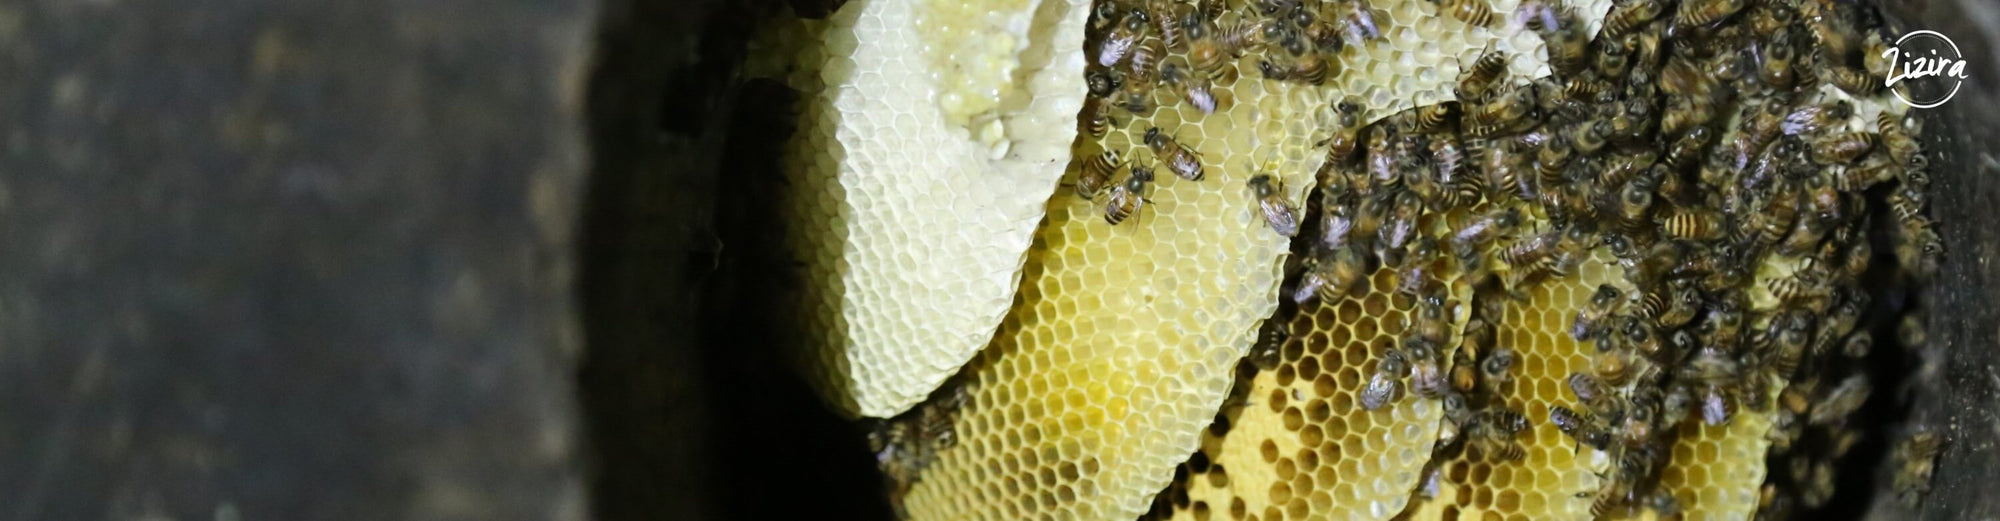 Visit to a Honey Bee Farm | Zizira